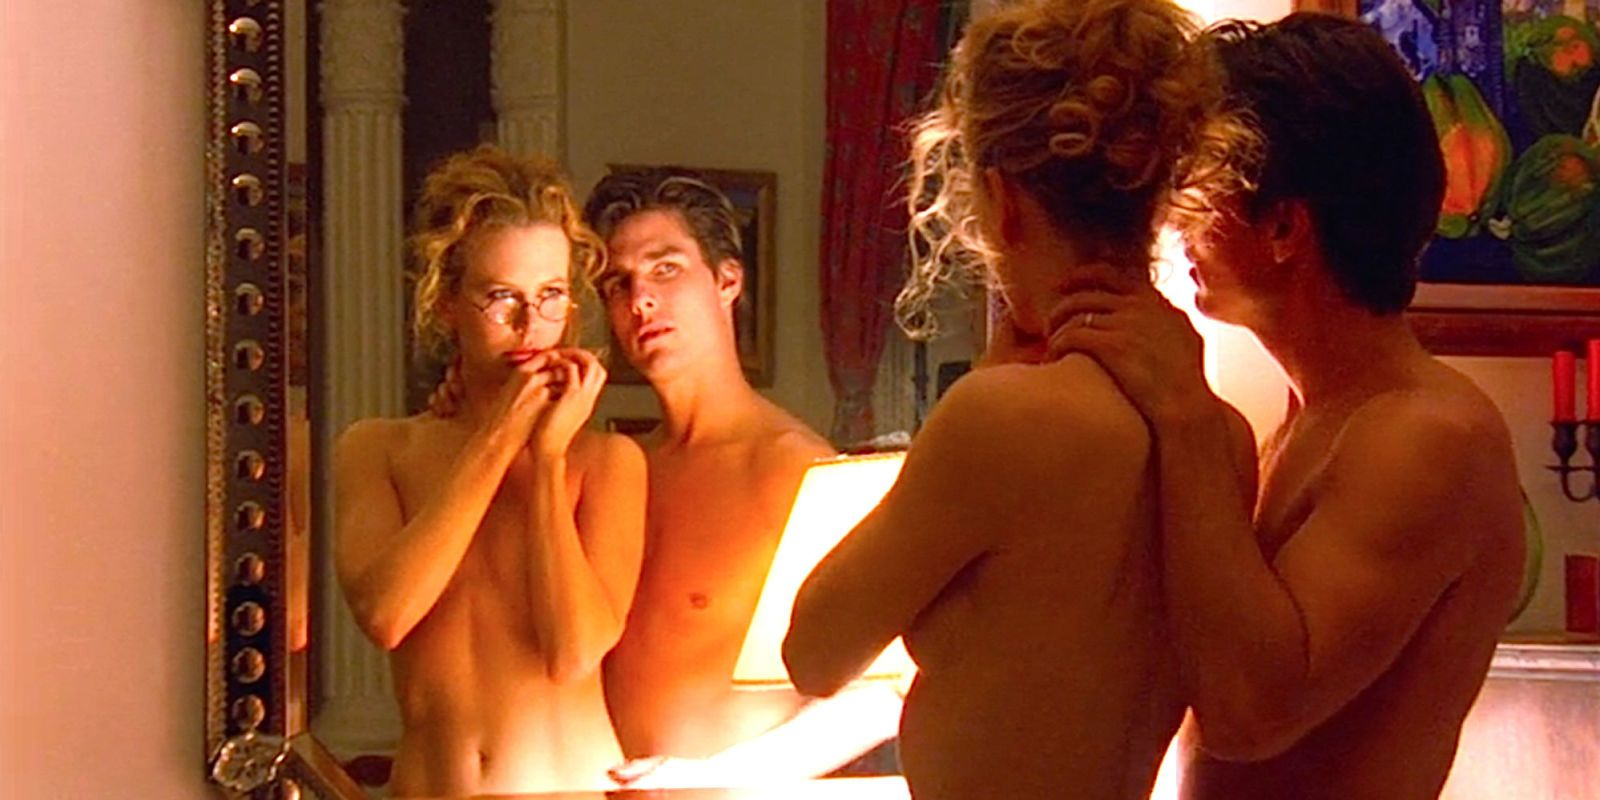 Nude Scene Of Hollywood Movies